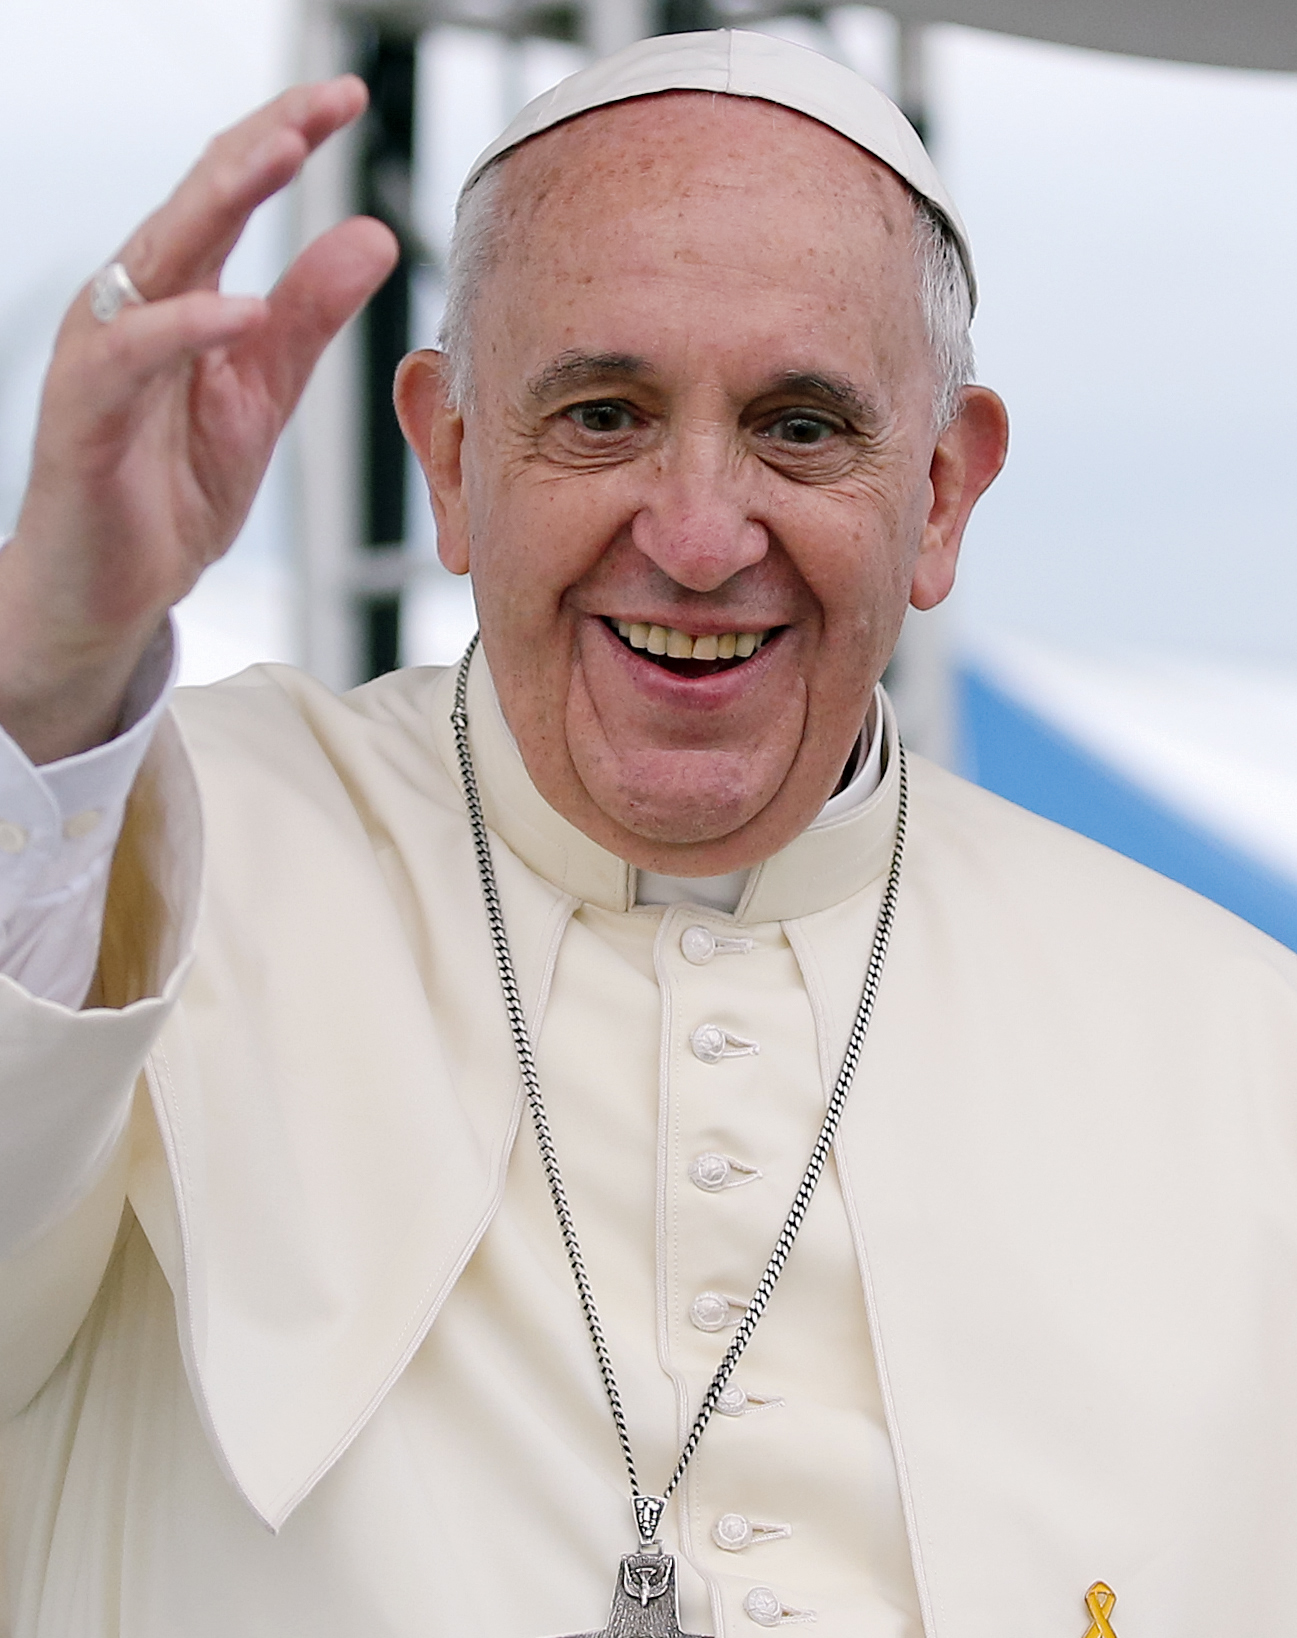 What Is Pope Francis Up To?